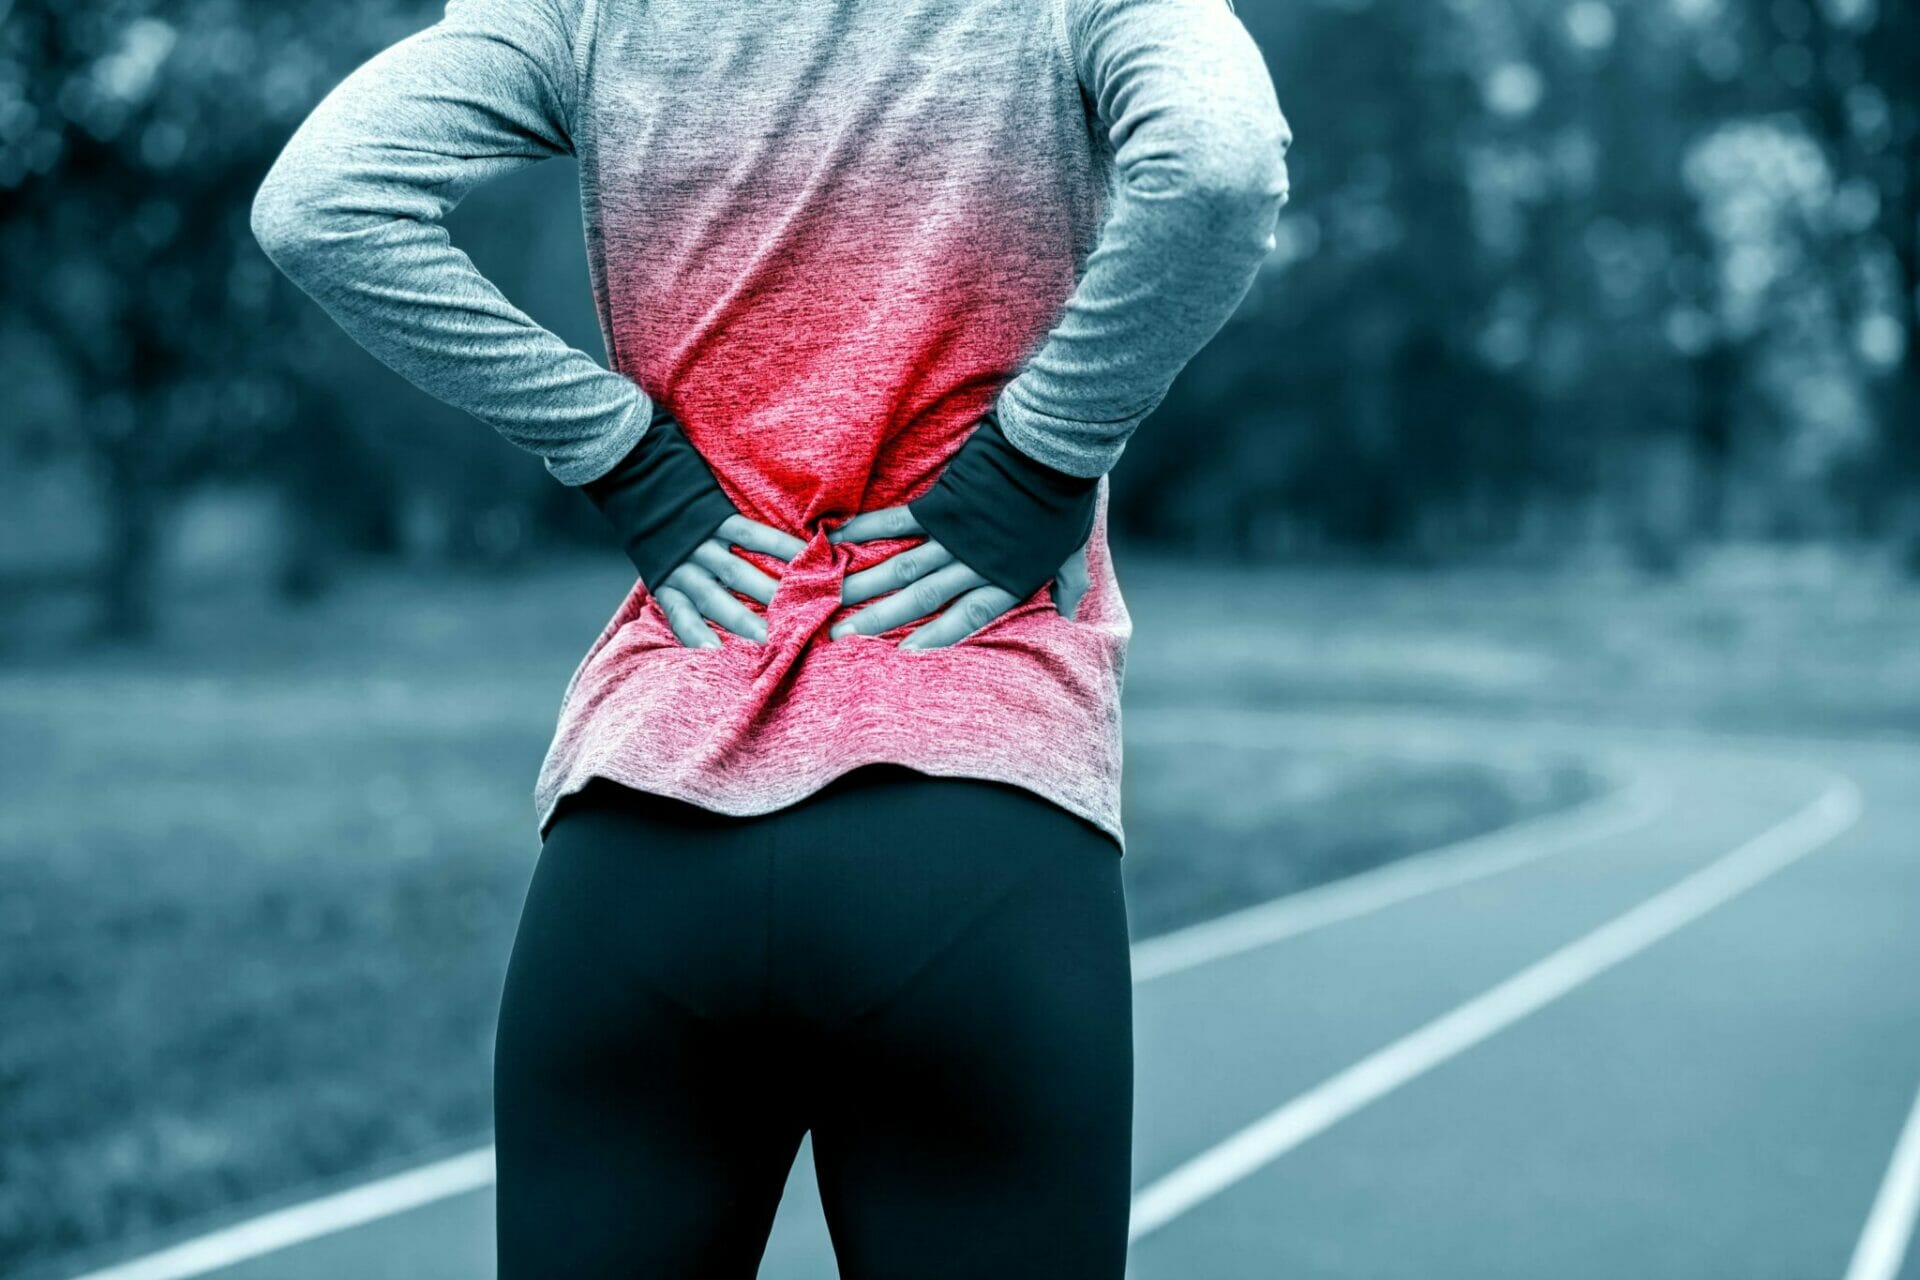 I have Sciatica what can I do to help?